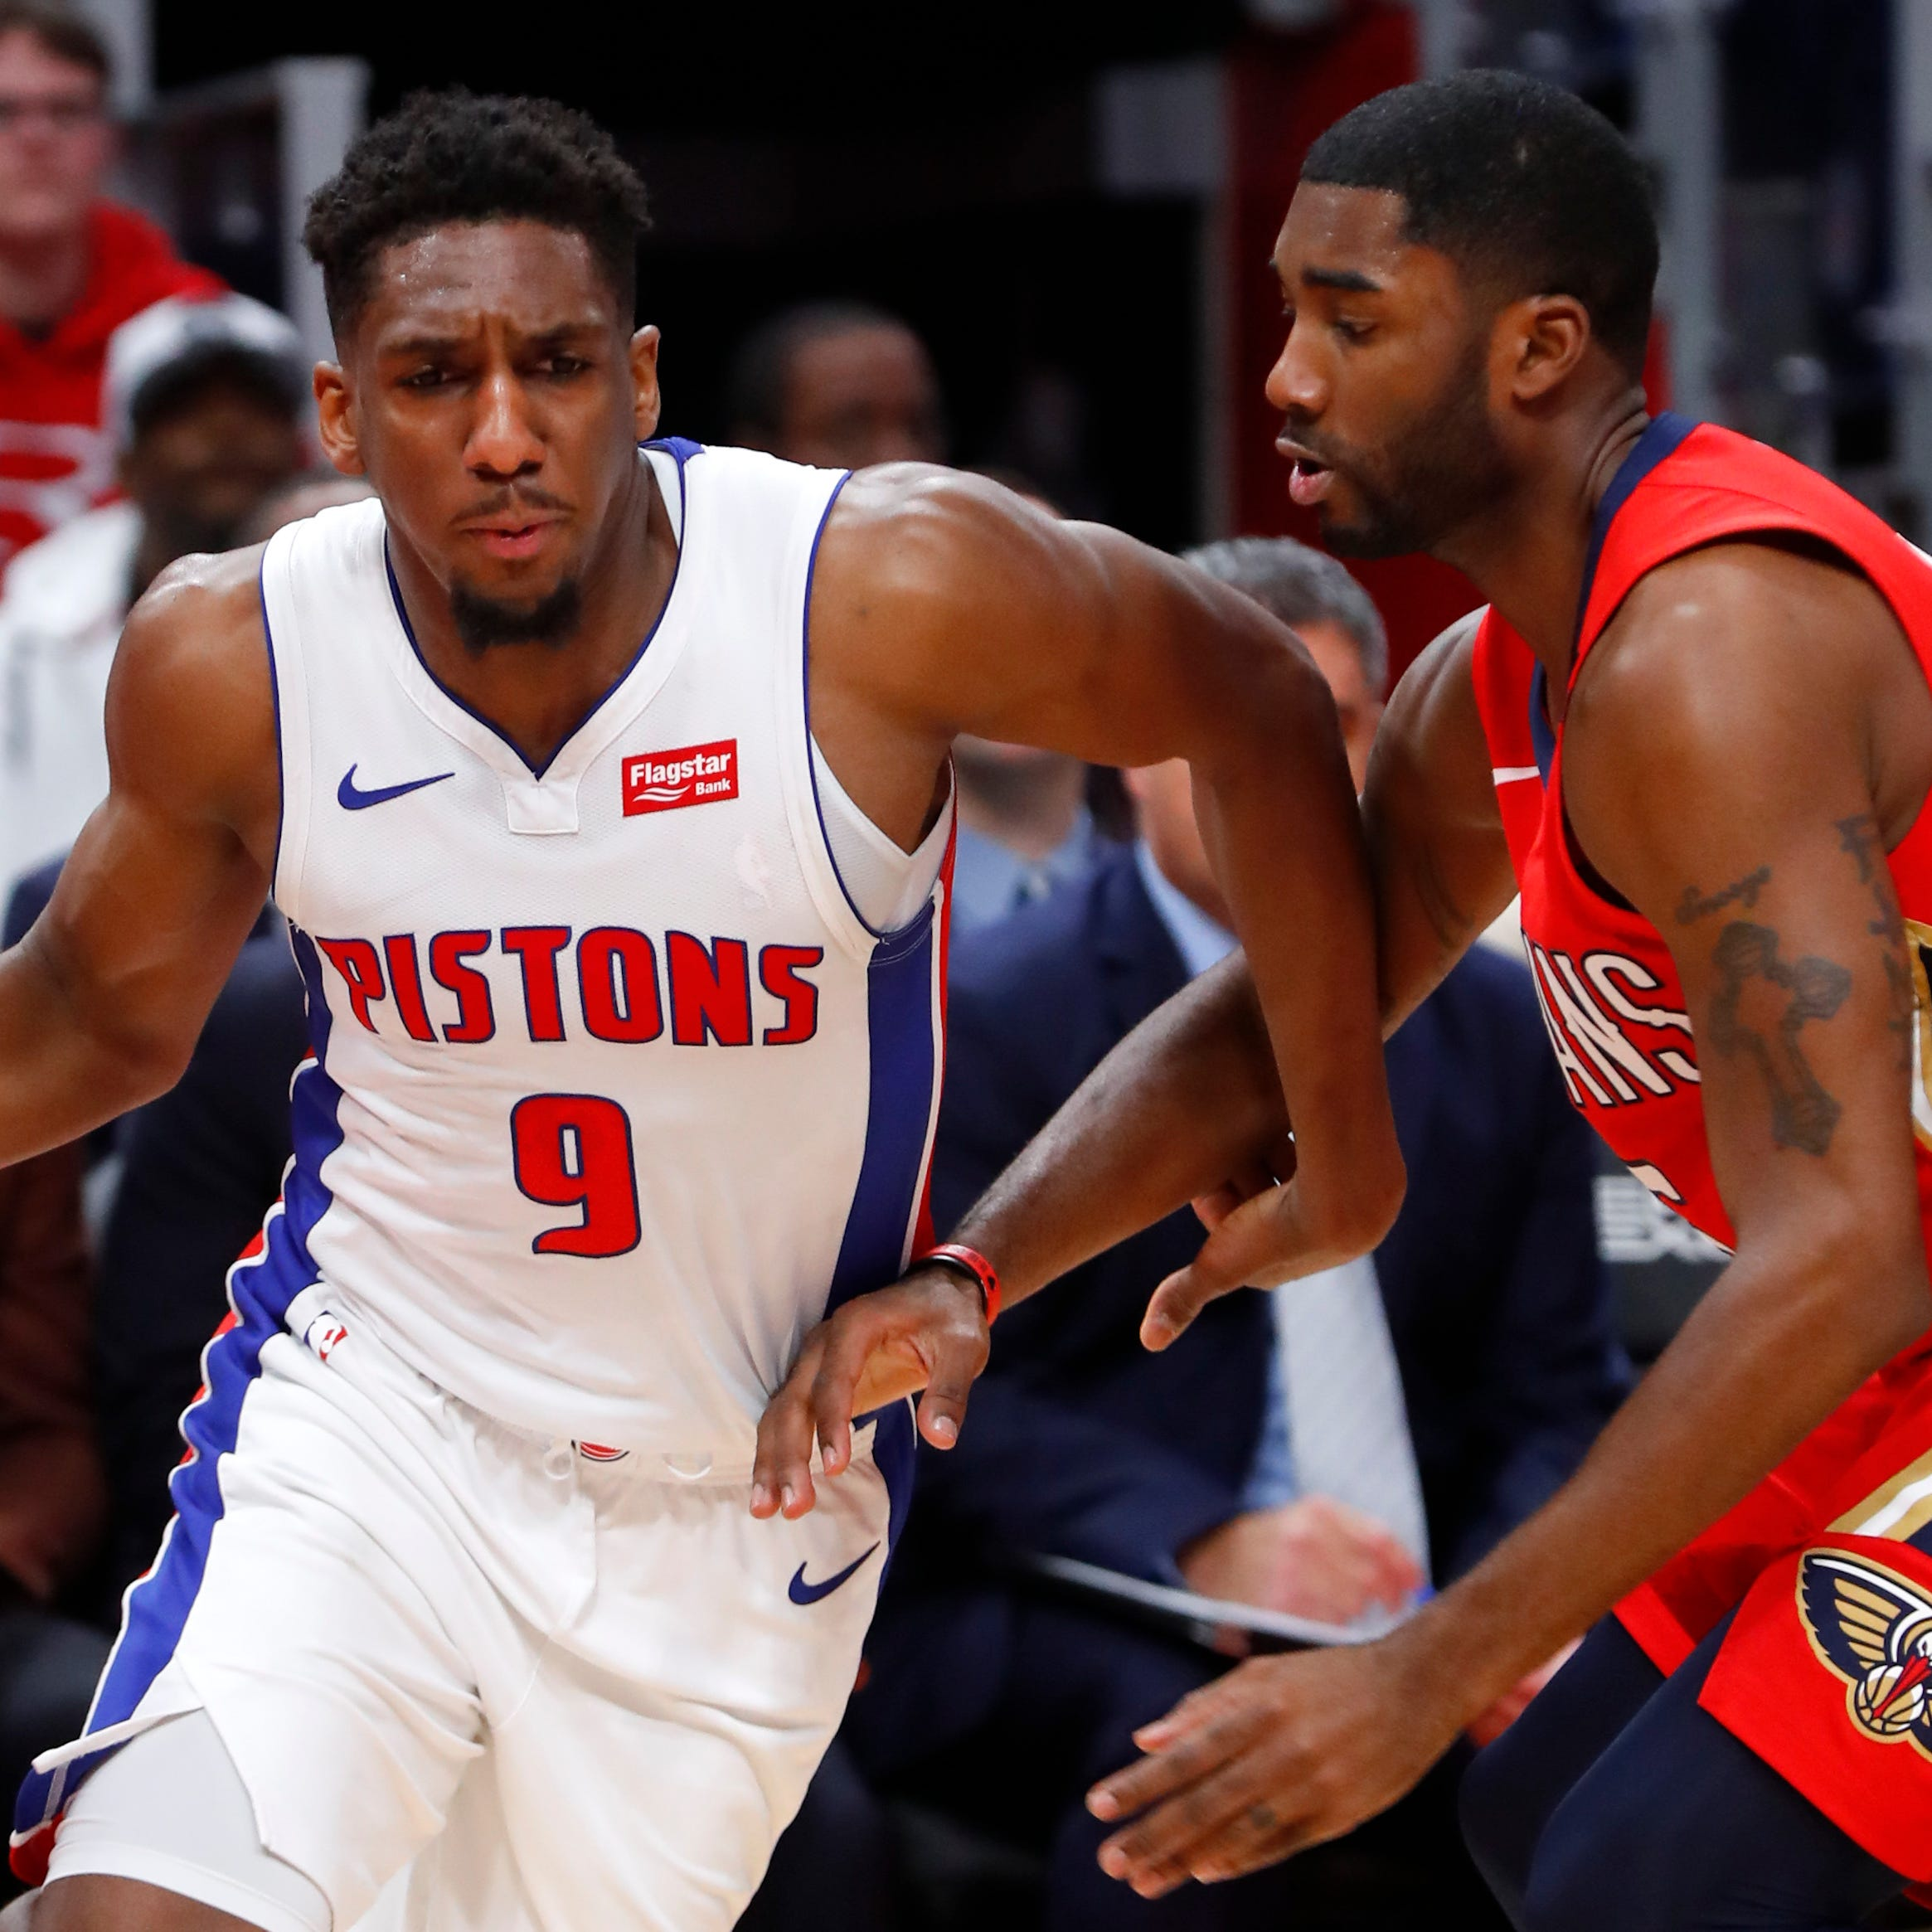 Game thread: Pistons lose to Pelicans, 116-108